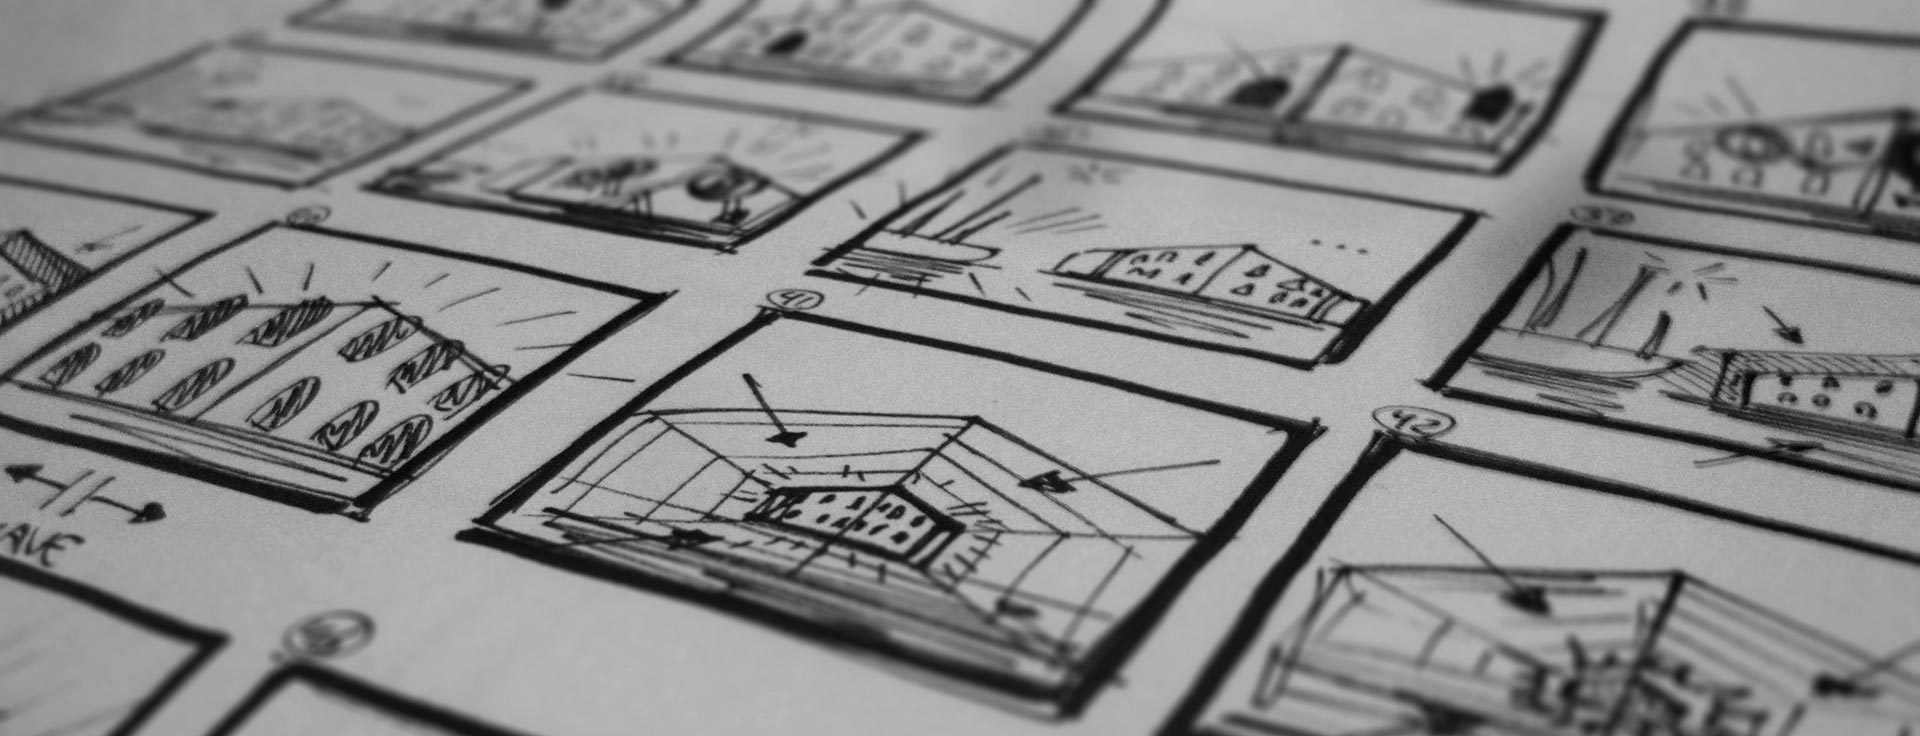 Detail of a storyboard drawing created by Mr.Beam, for the projection mapping show design at Amsterdam Light Festival